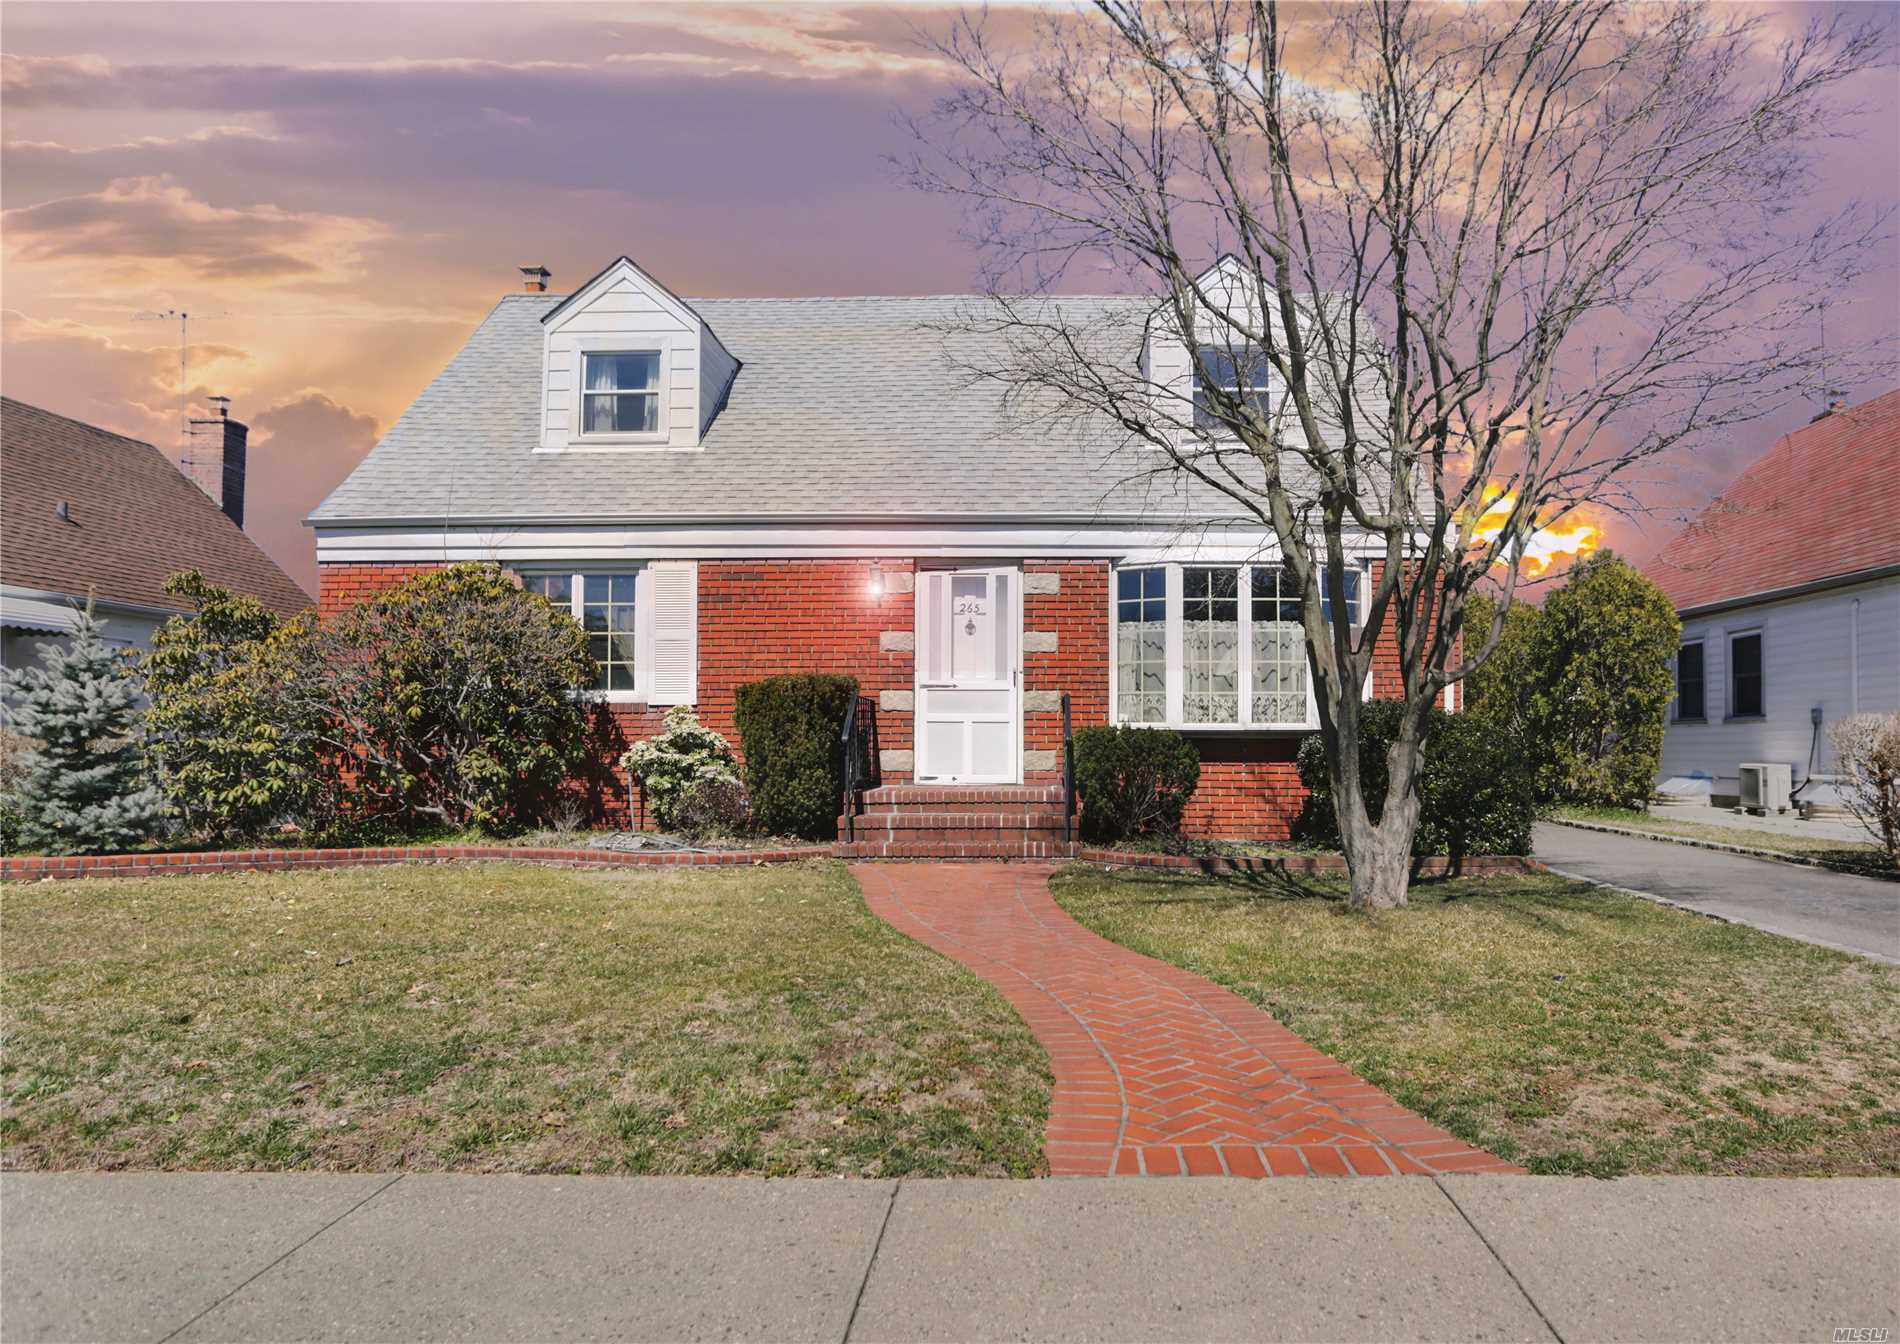 Spacious expanded cape located on a quiet, picturesque block in Herricks Schools outside of the village. Just minutes from the LIE, Northern Pkwy, LIRR and all schools, shopping and dining. Well kept with a bright, pleasing layout, hardwood floors, full basement partially finished and a detached garage. Private yard with plenty of parking on and off the street.